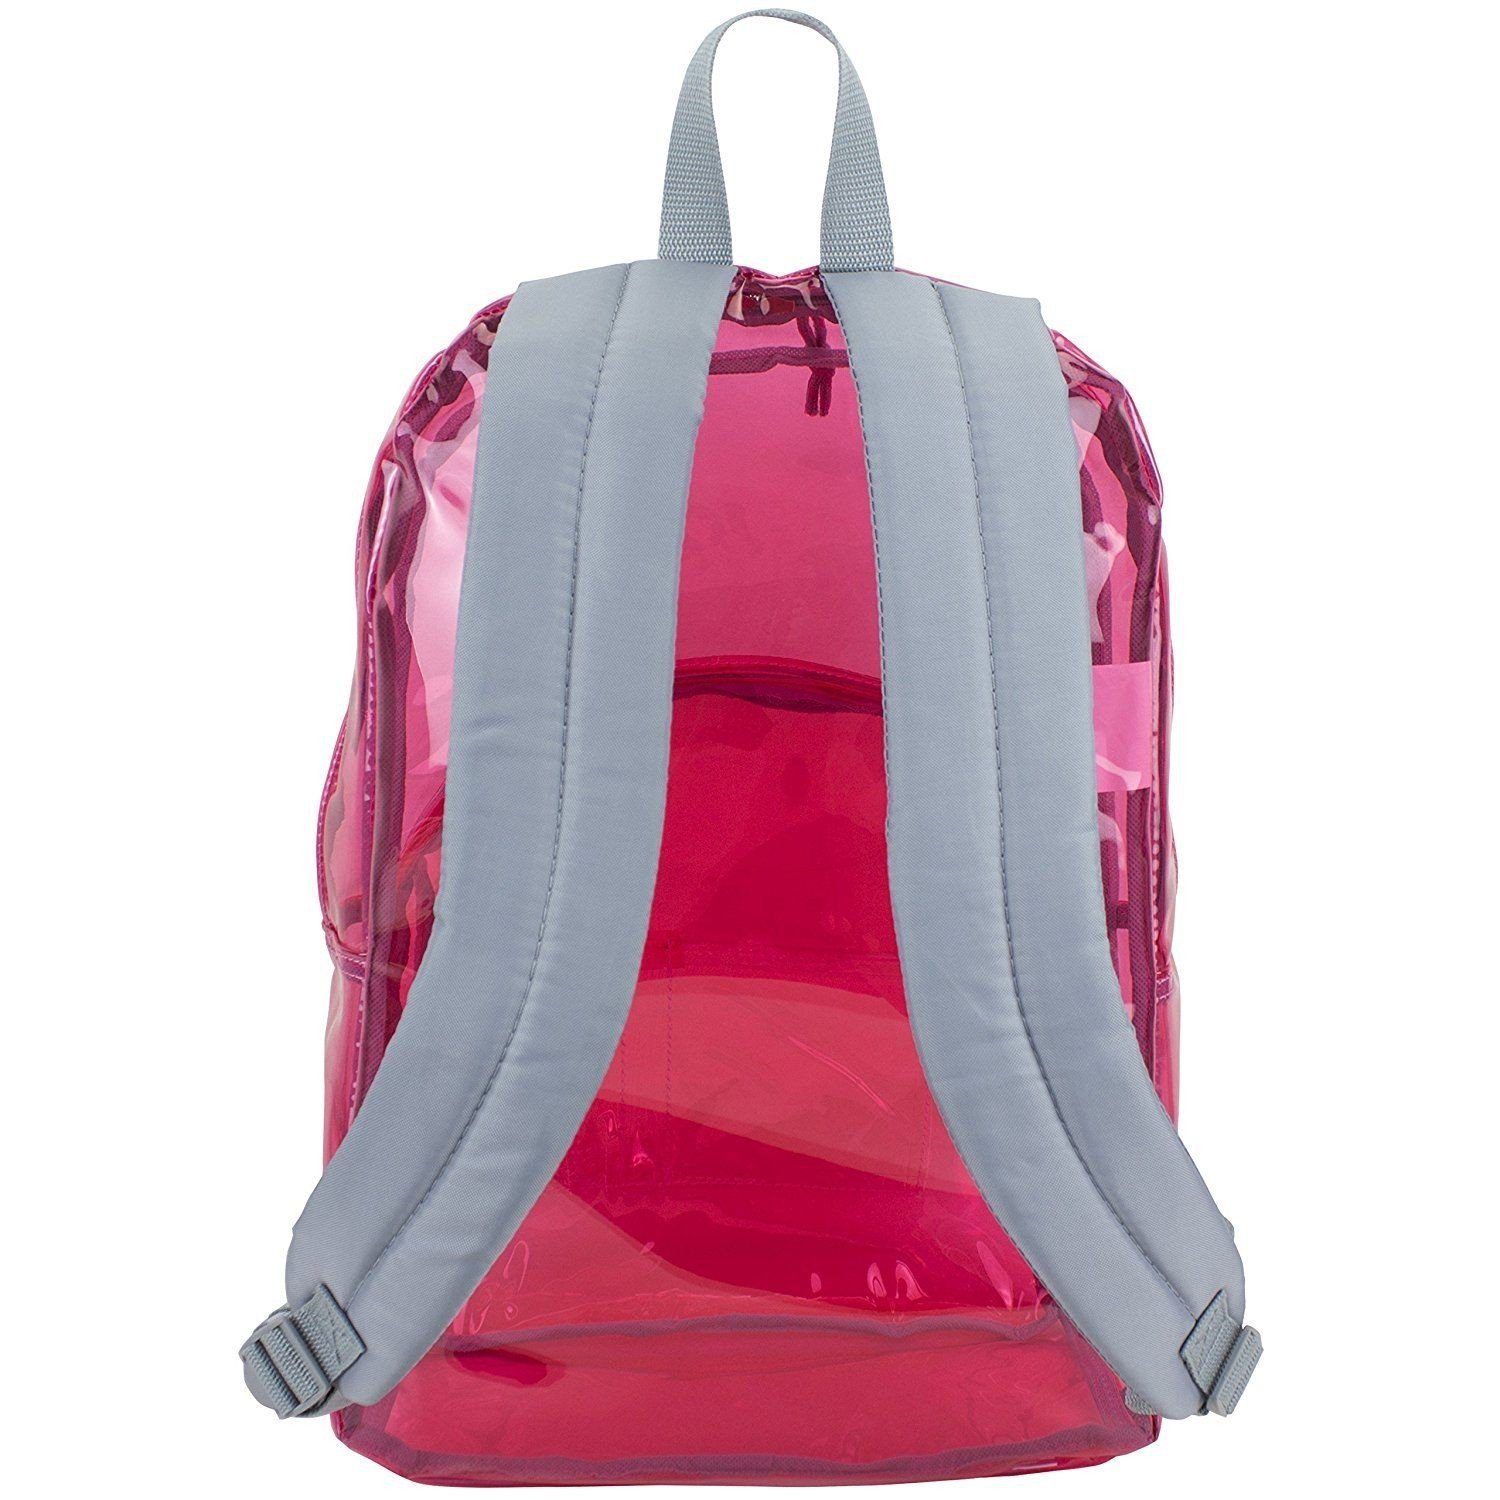 17'' Clear Pink Wholesale Backpack - Case of 24 by Eastsport (Image #4)